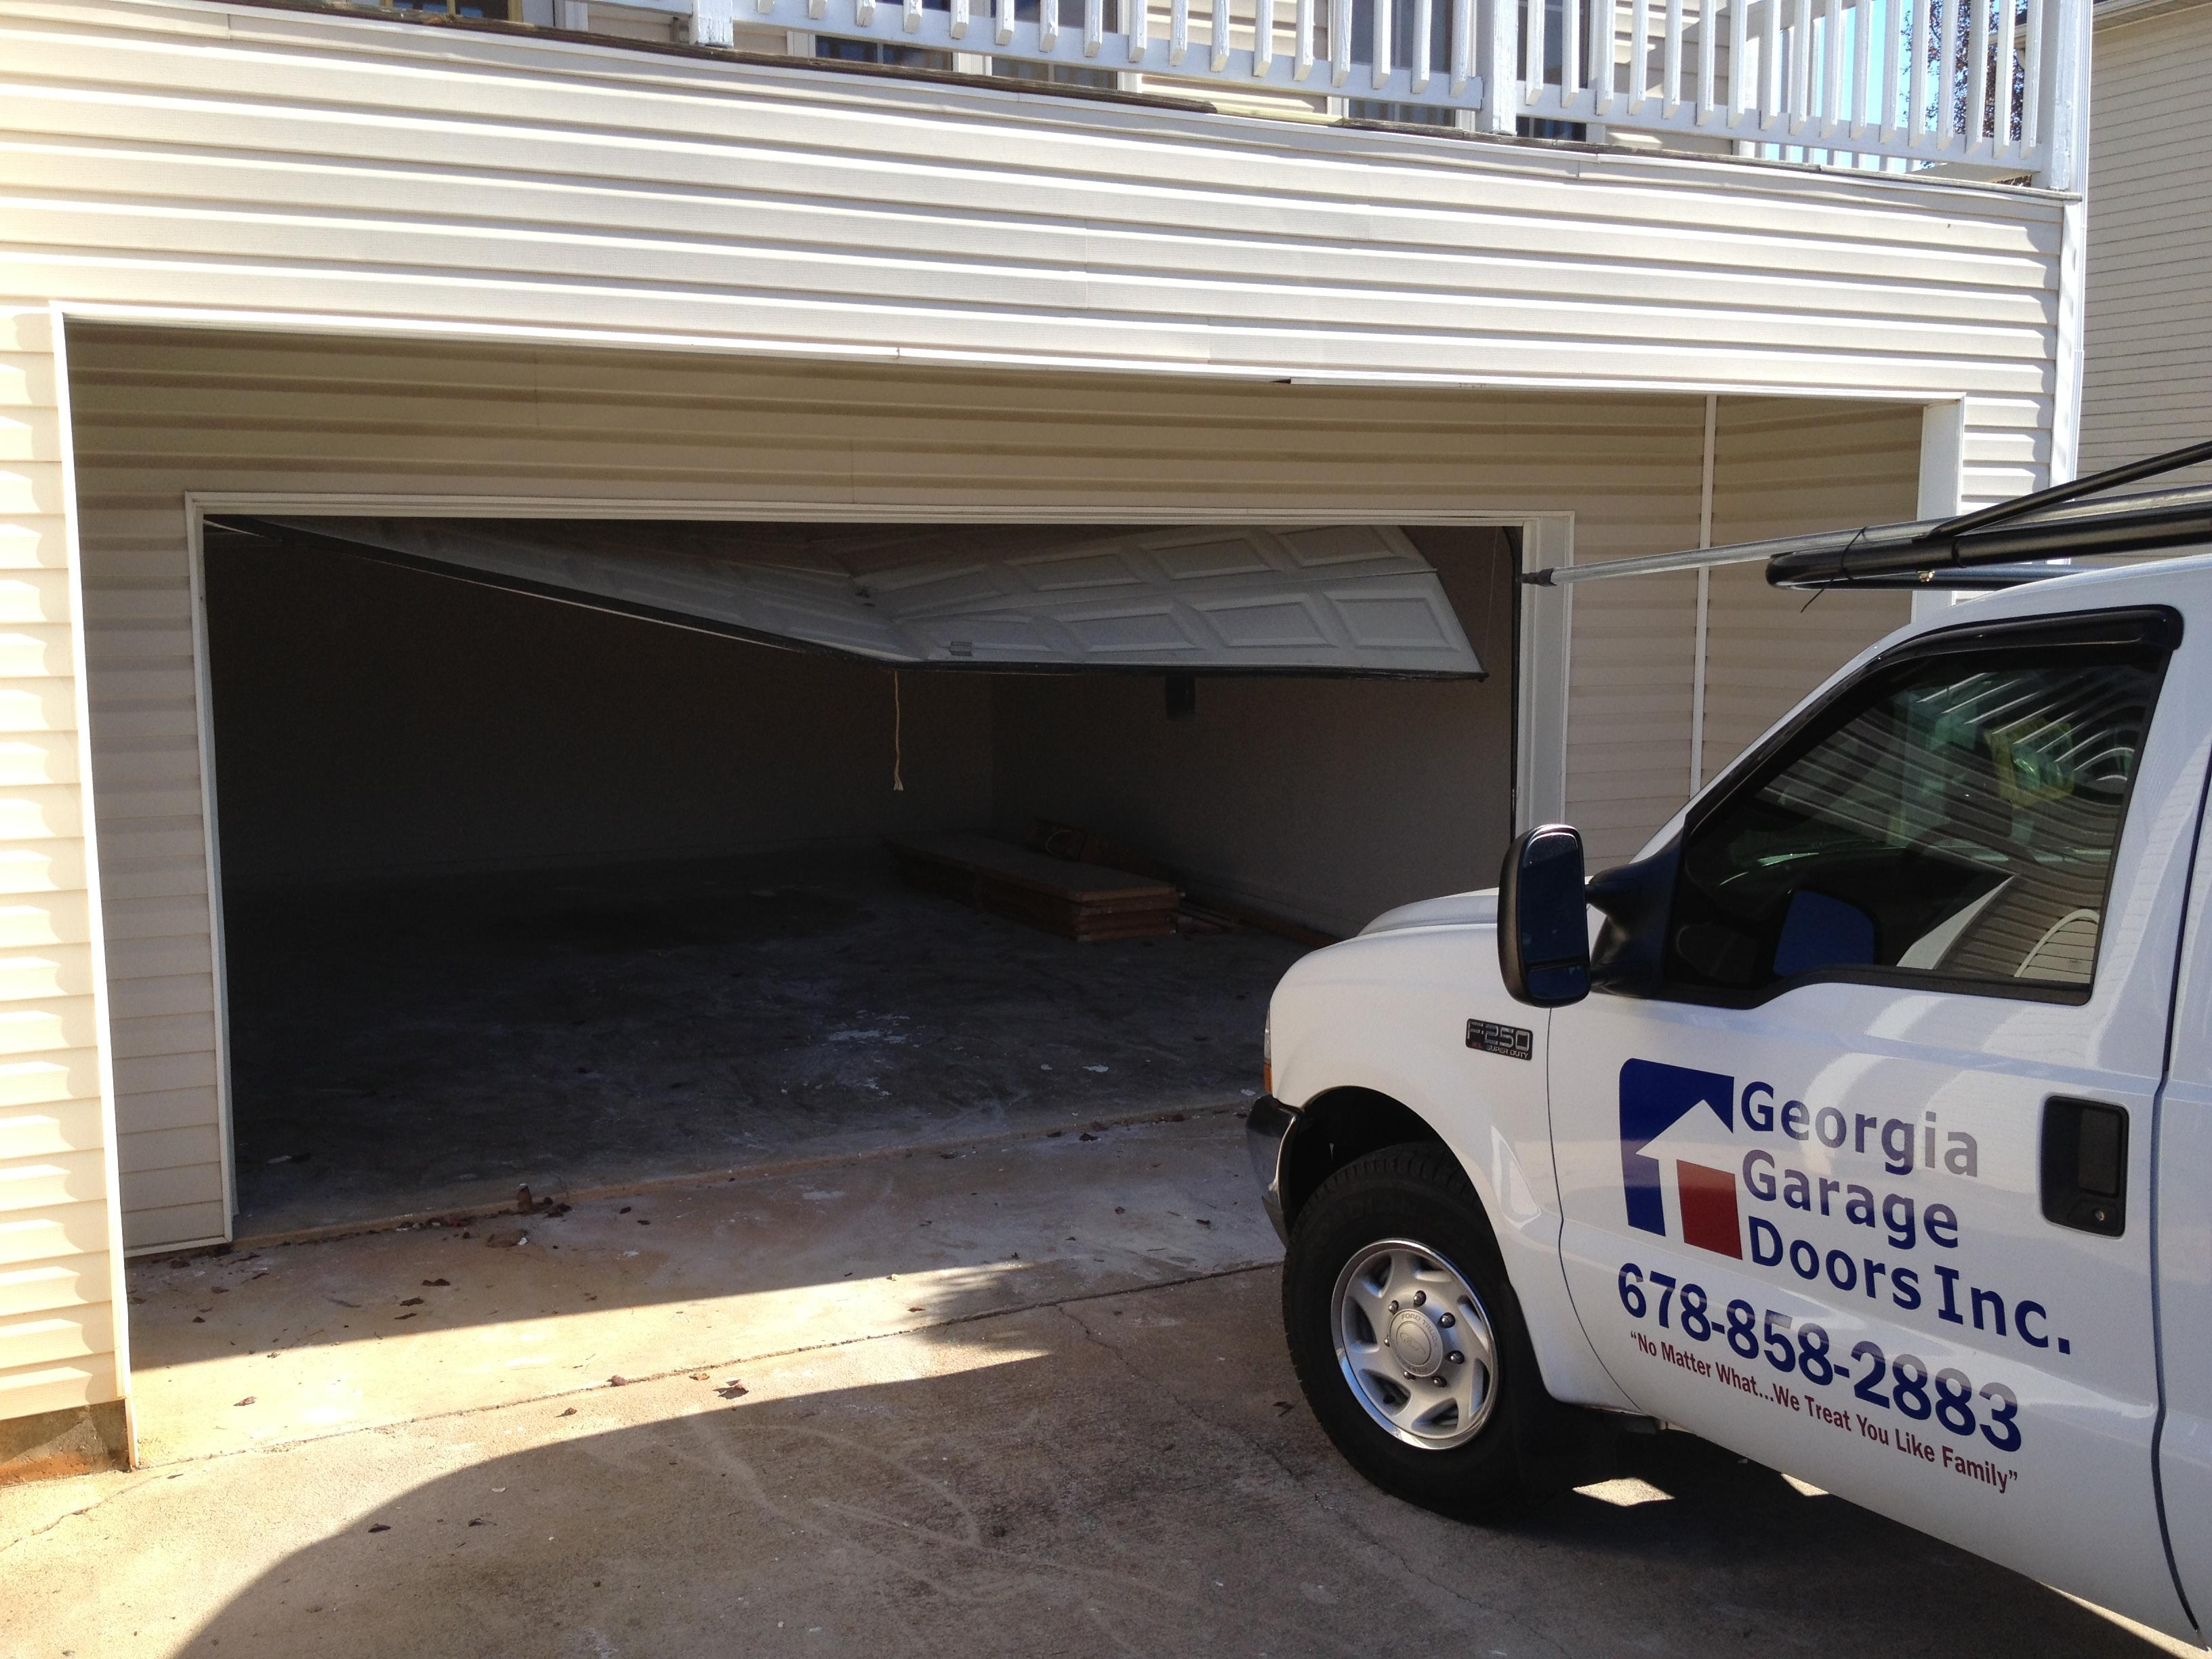 Peachtree doors inc skilled garage door contractor in for Peachtree exterior doors